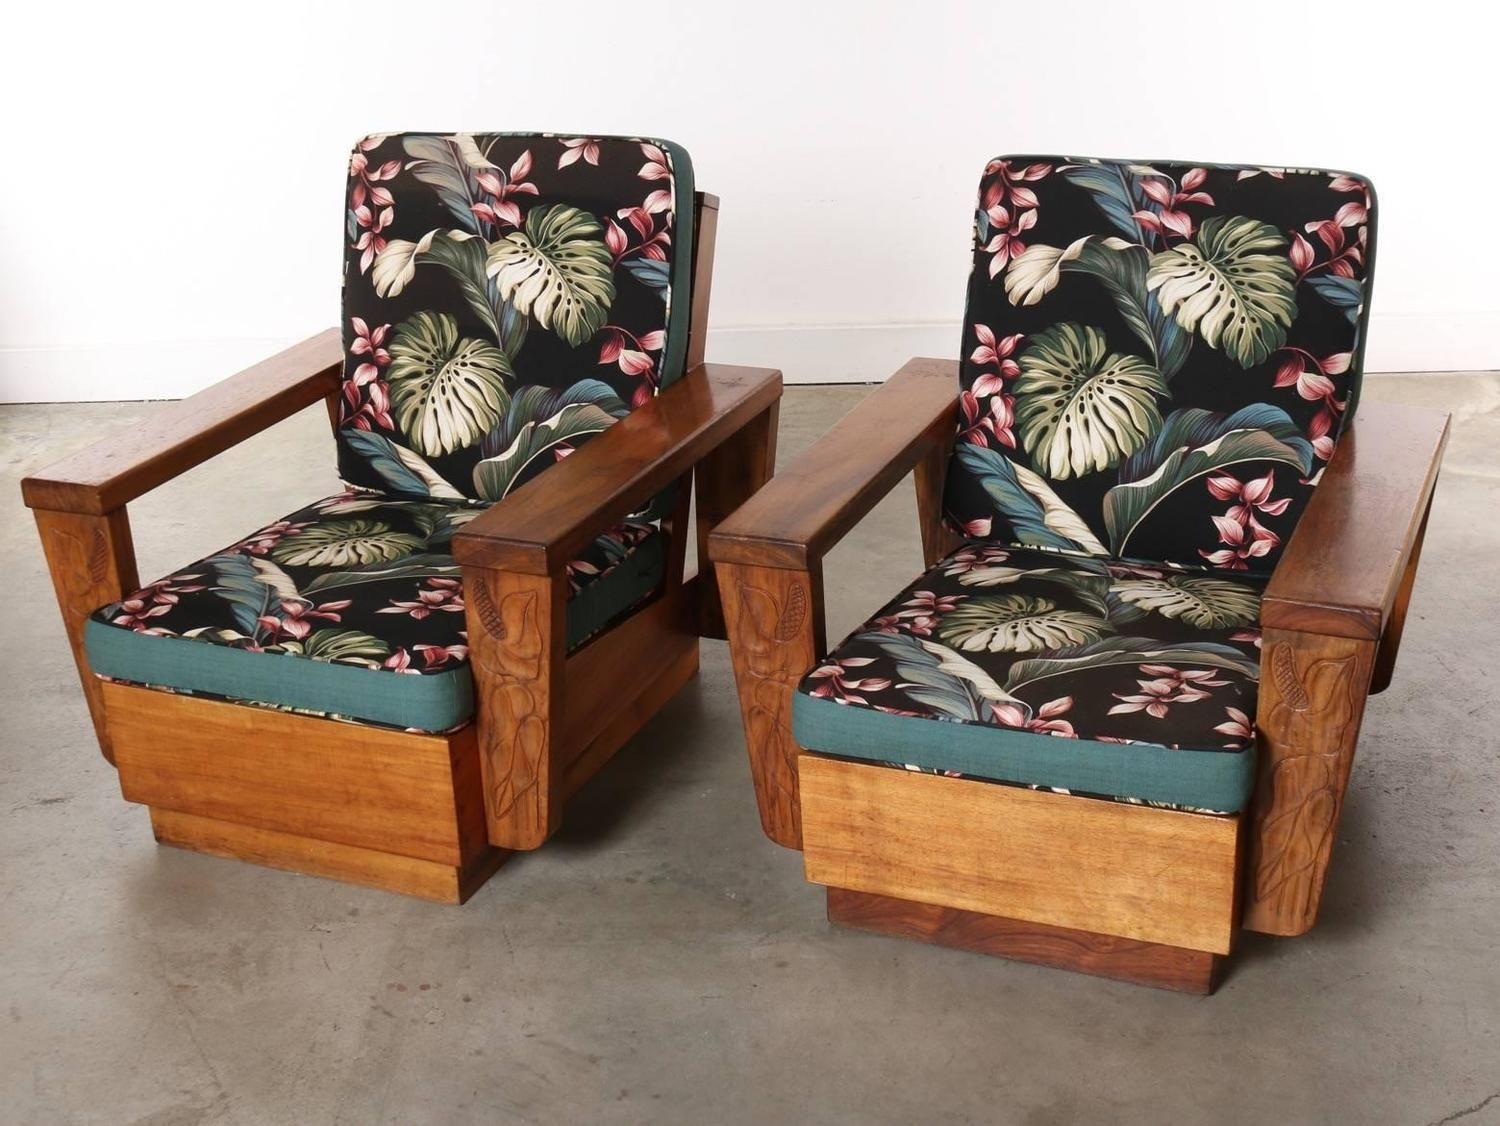 Wood Club Chair Pair Of 1940s Hawaiian Koa Wood Club Chair Decor Hawaiian Home